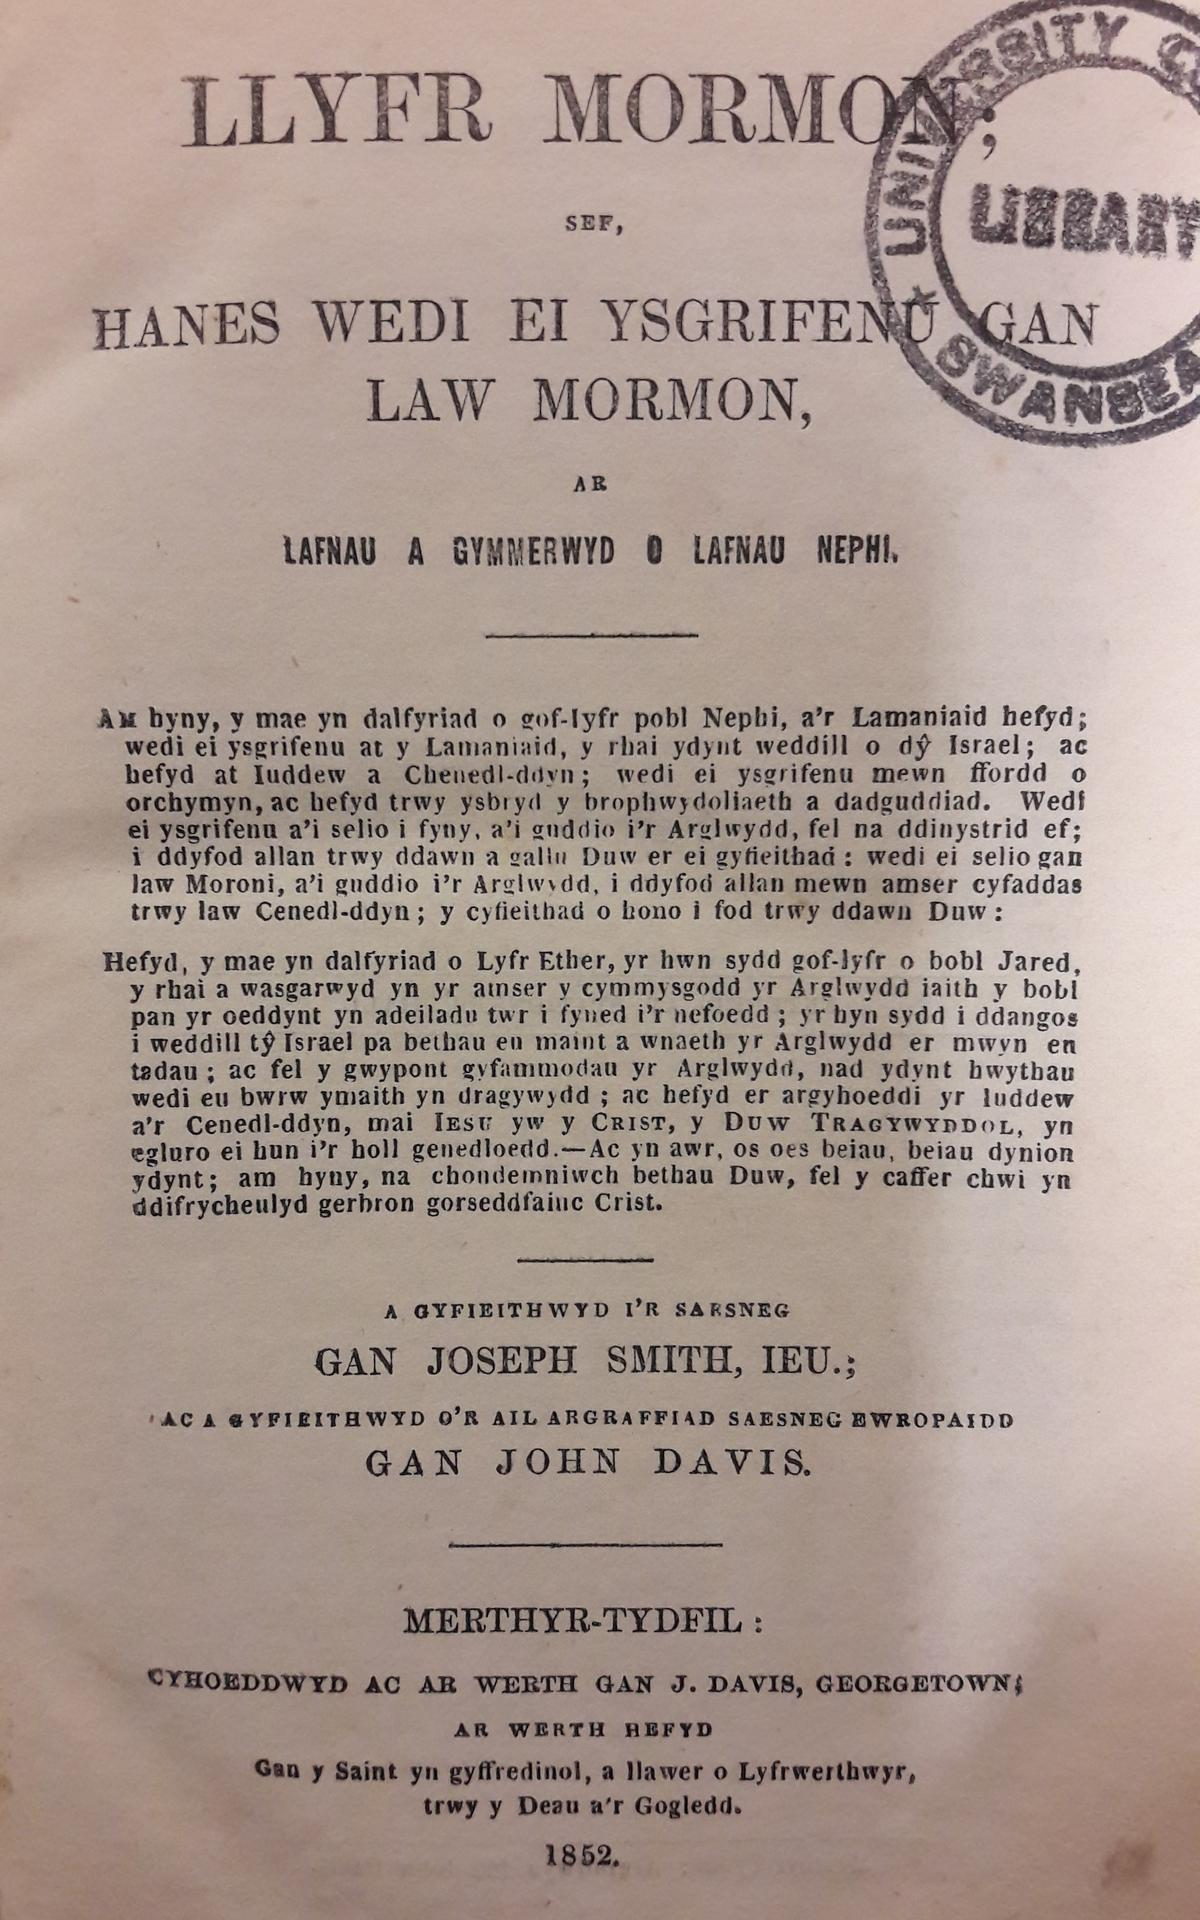 Welsh Book of Mormon